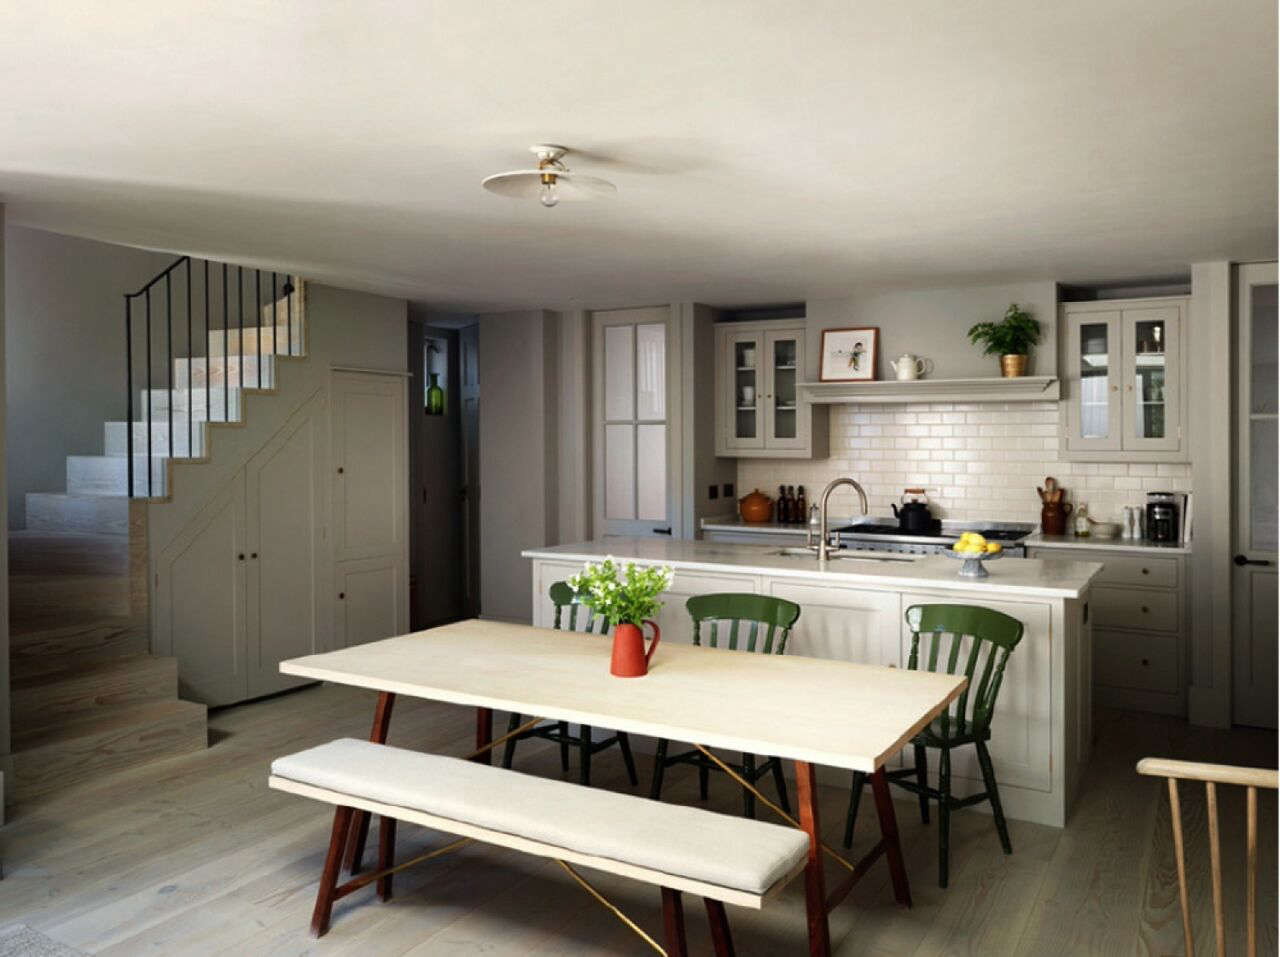 A Notting Hill Townhouse Tailored for Living by Charles Mellersh Plain English kitchen in a Notting Hill town house by interior designer Charles Mellersh   Remodelista